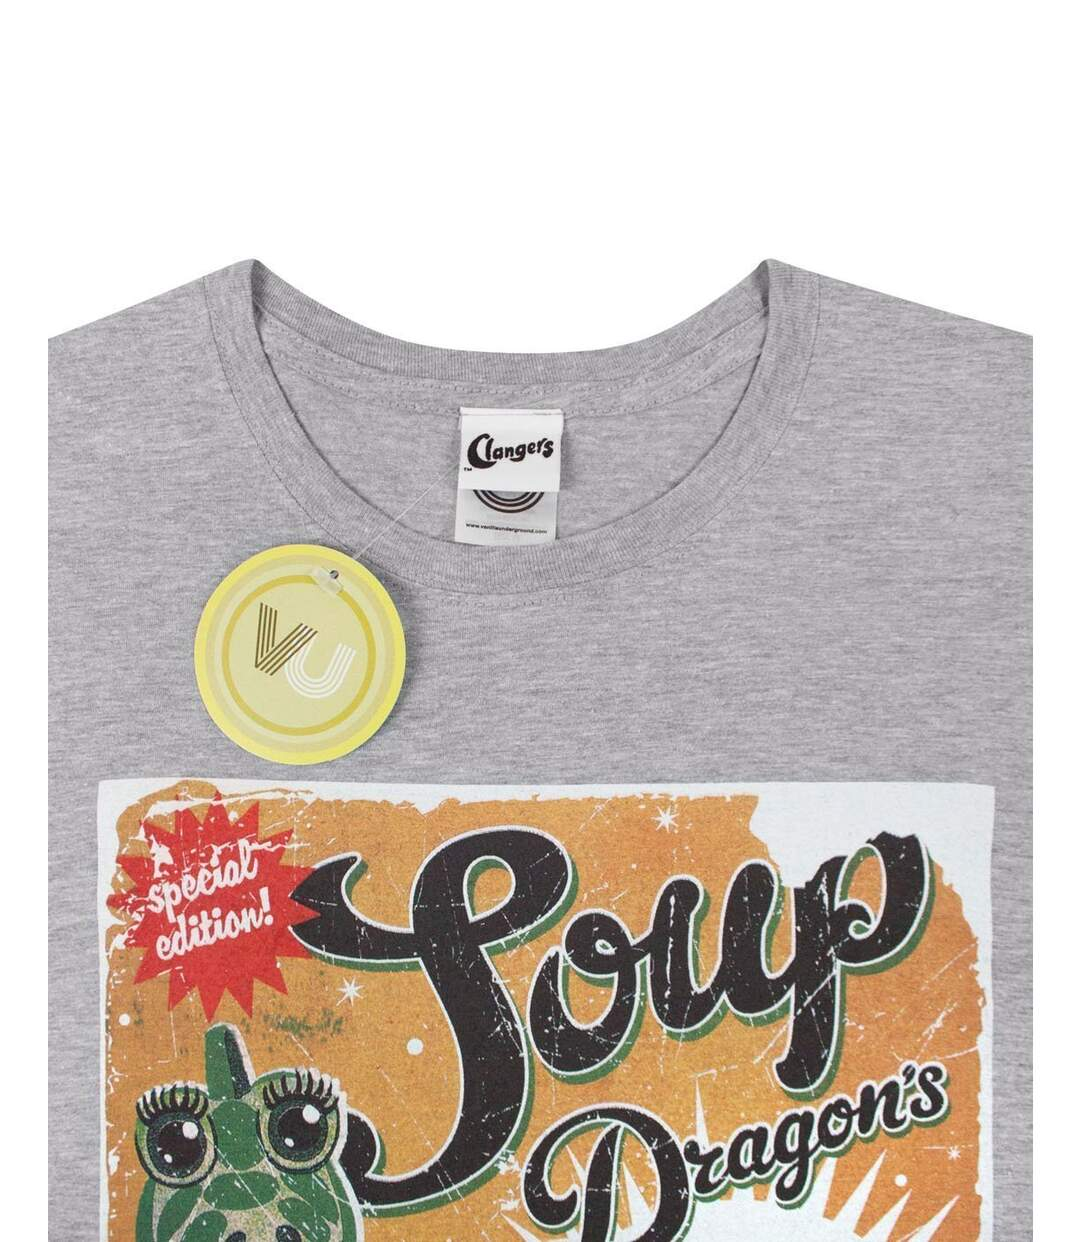 Clangers Mens Soup Dragons Green Soup T-Shirt (Grey) - UTNS4404